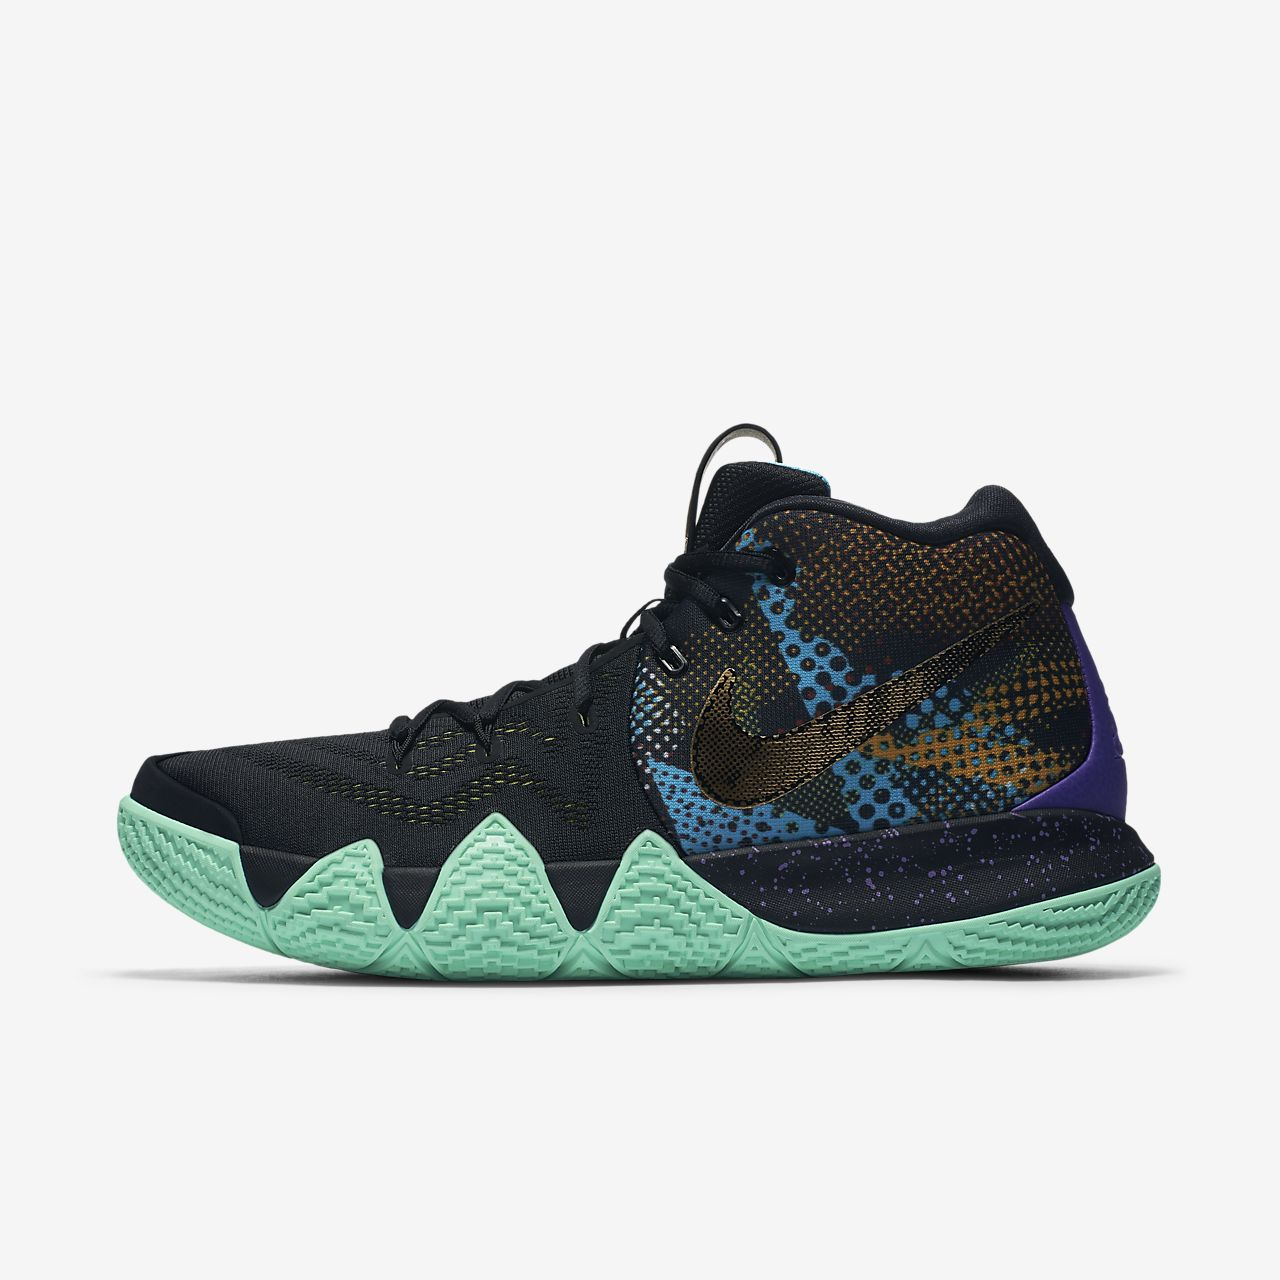 ... Kyrie 4 Men's Basketball Shoe